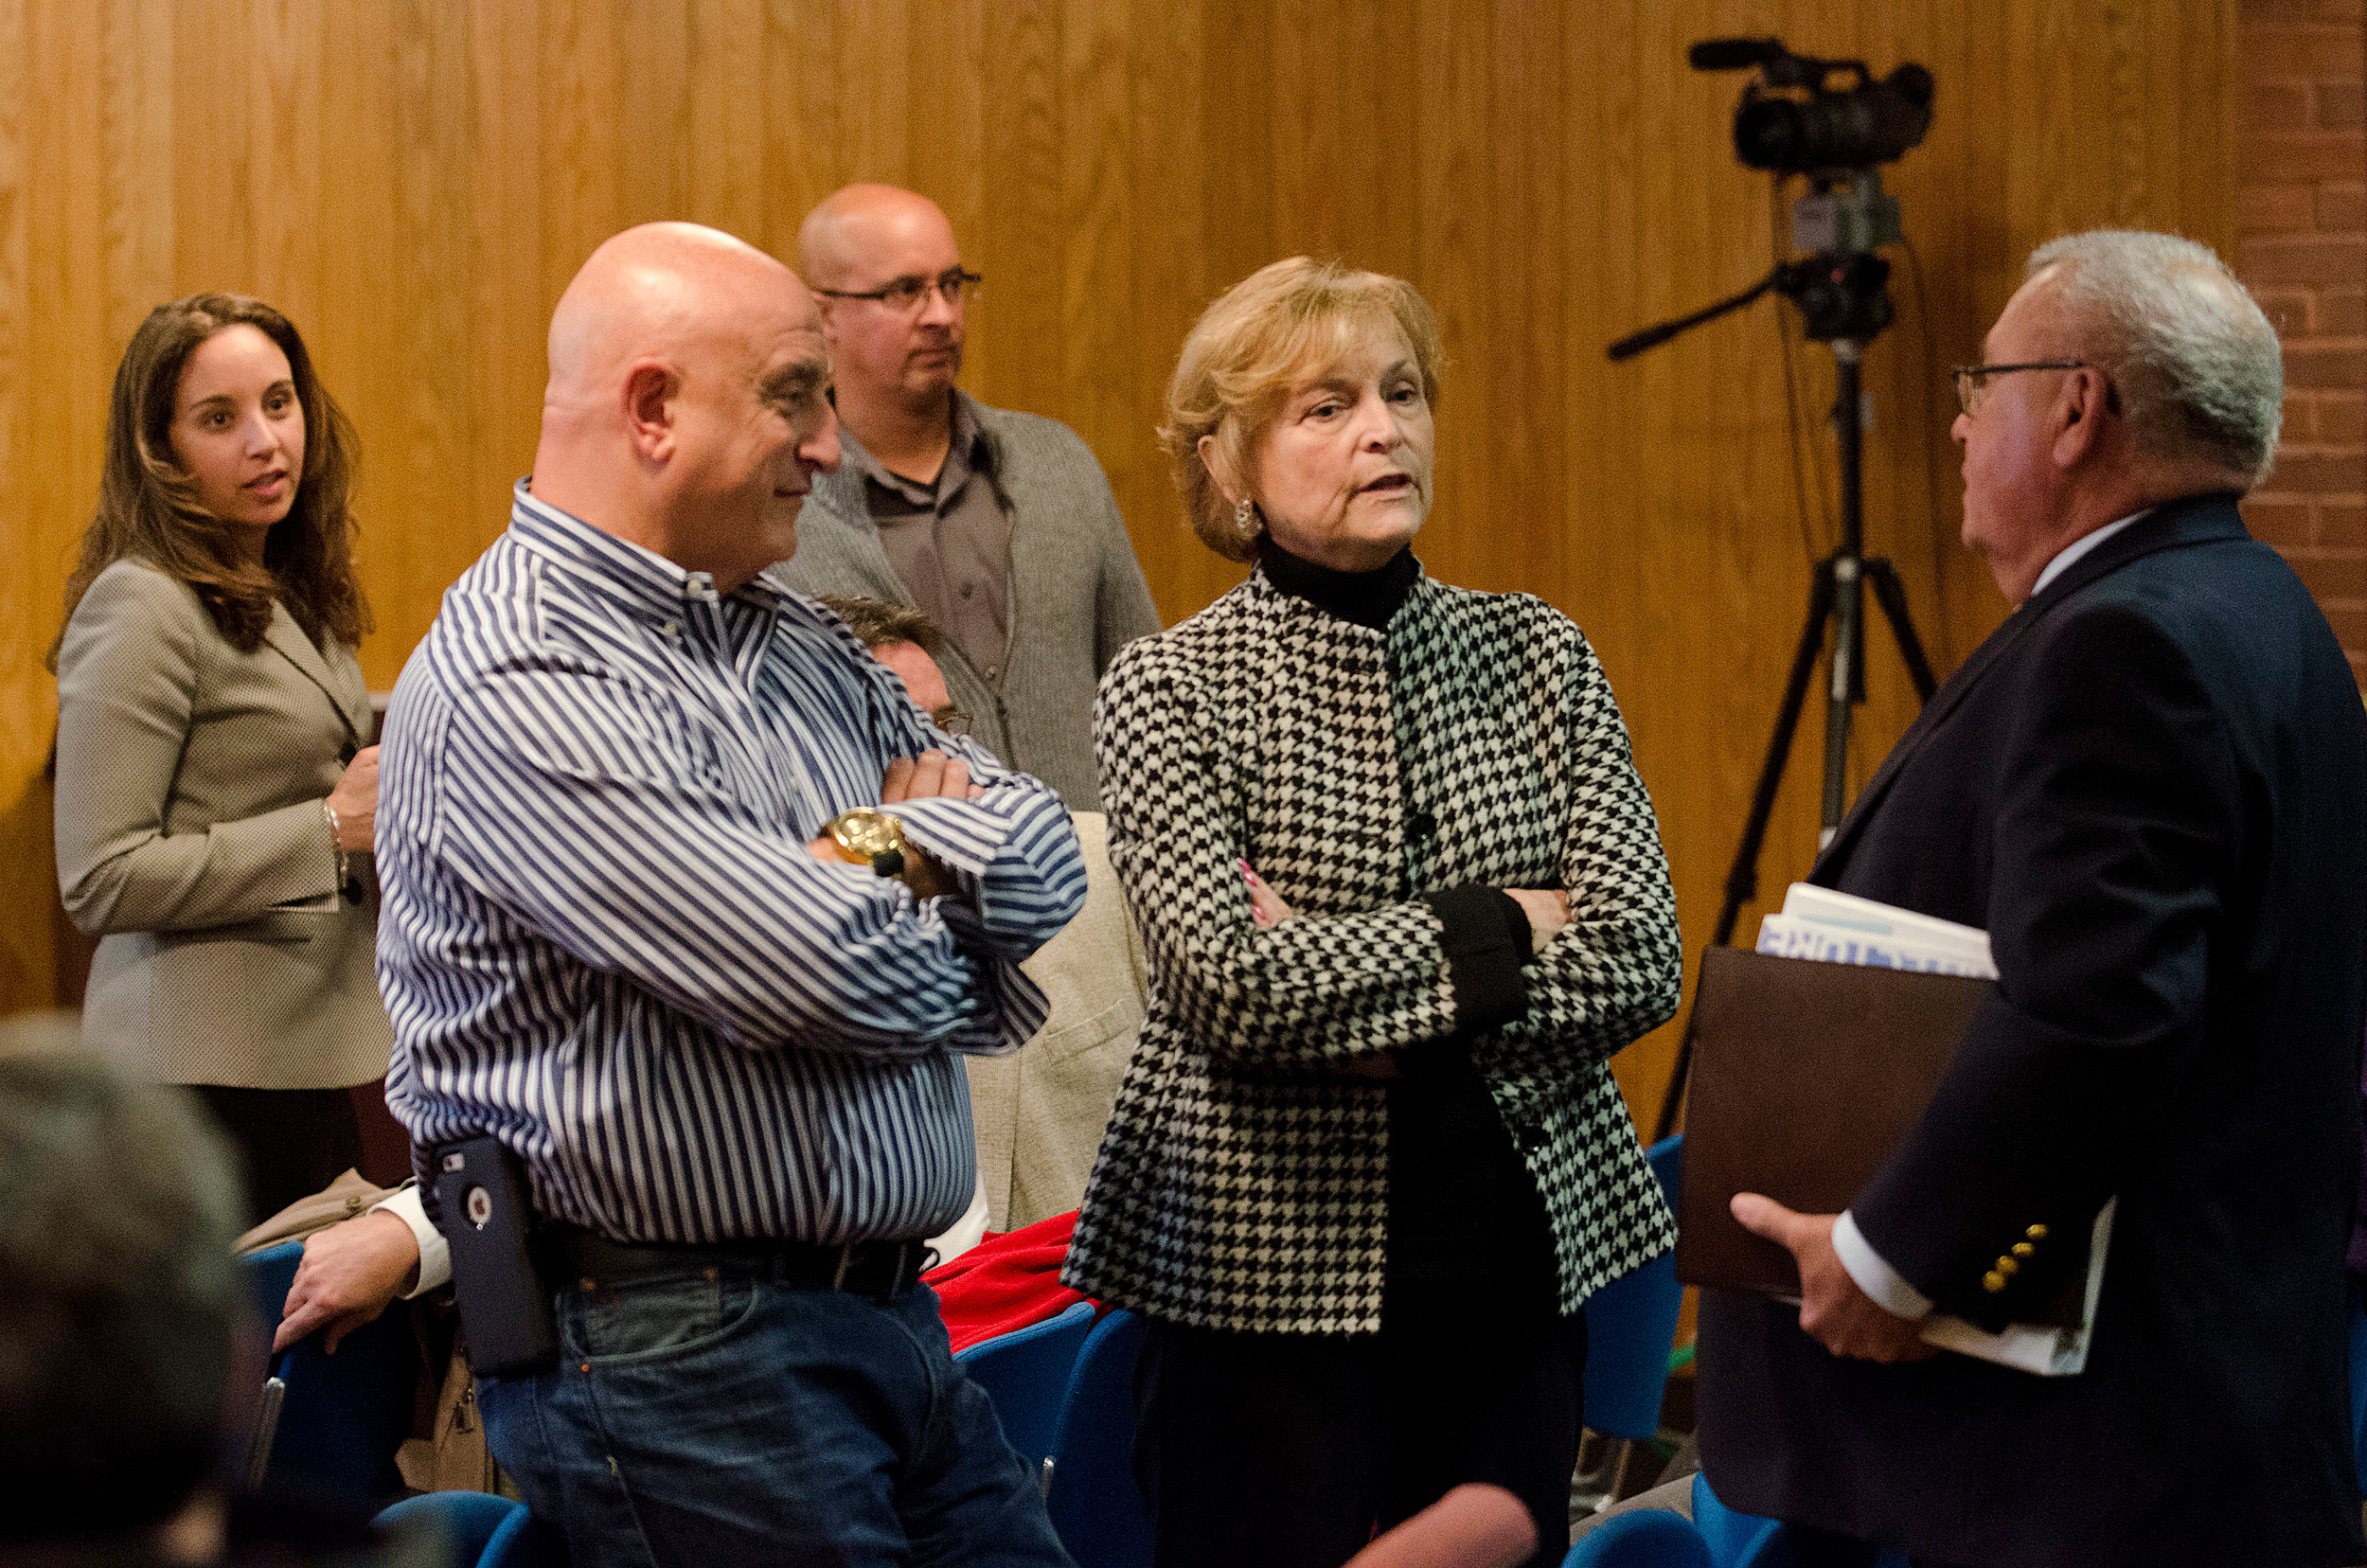 Facilities director Tony Feola, superintendent Kathryn Crowley and former superintendent Manny Vinhateiro have a discussion during the school committee's special session Monday.